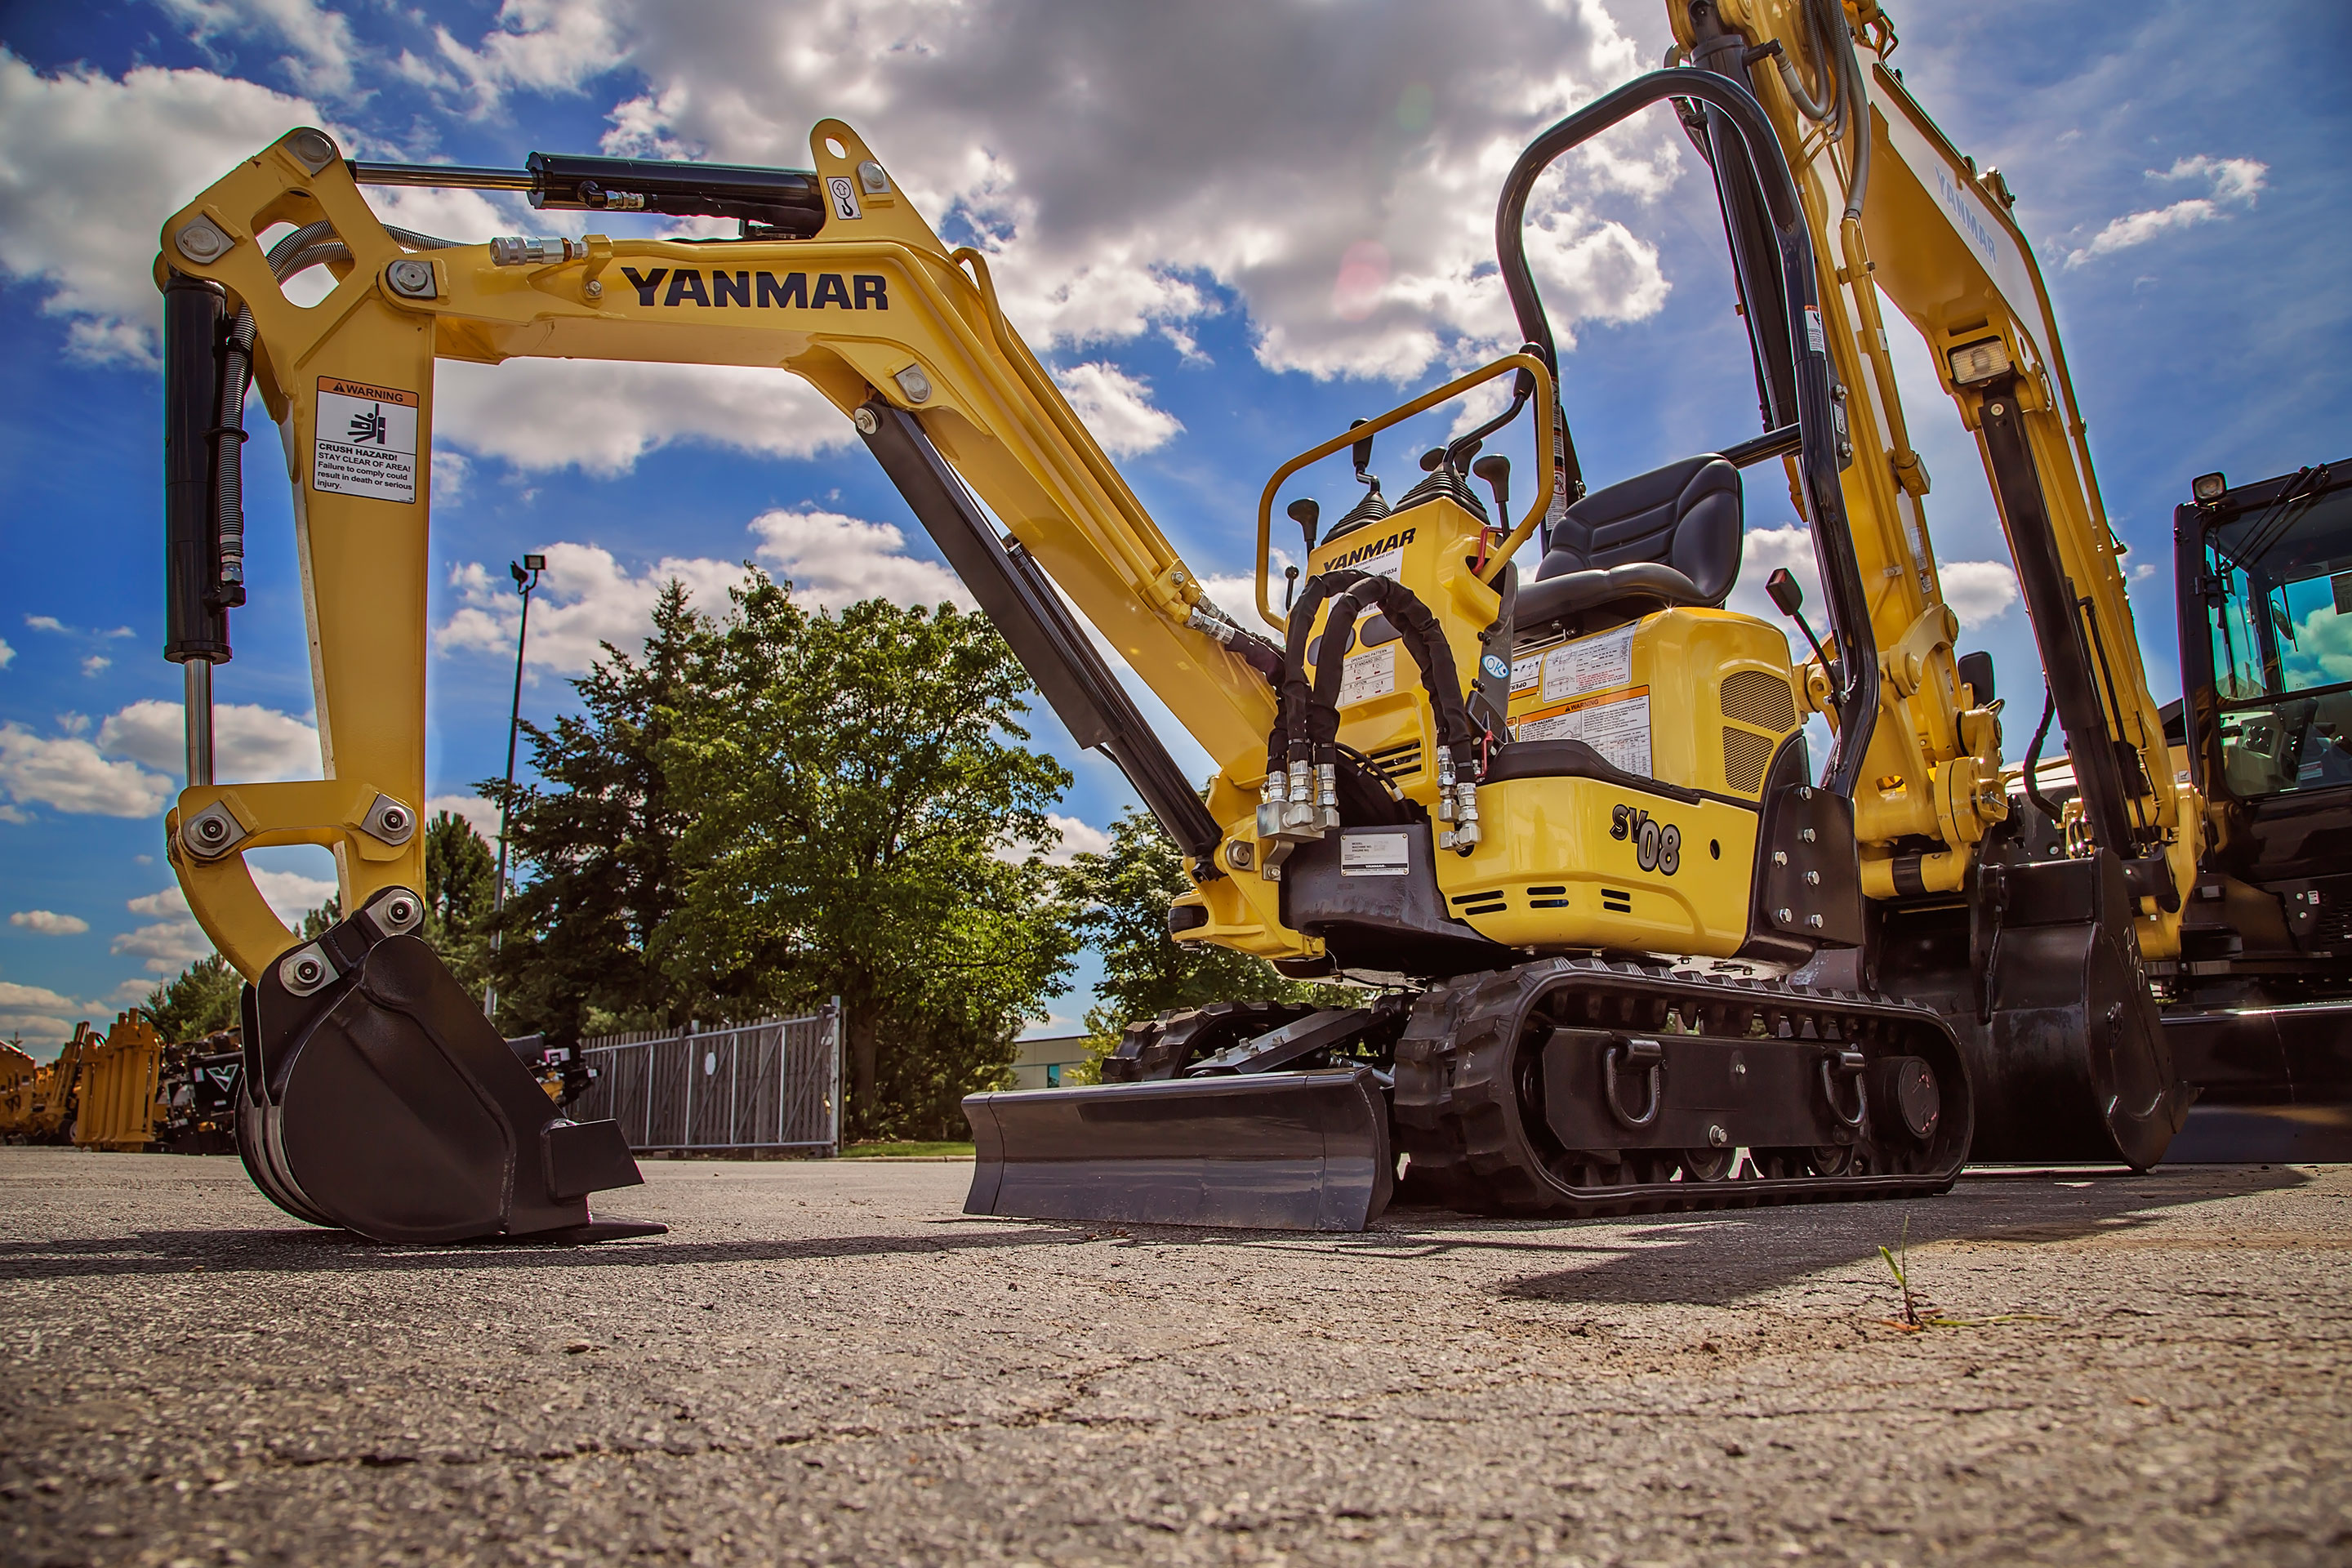 Yanmar Excavator SV08 - Make the switch today!